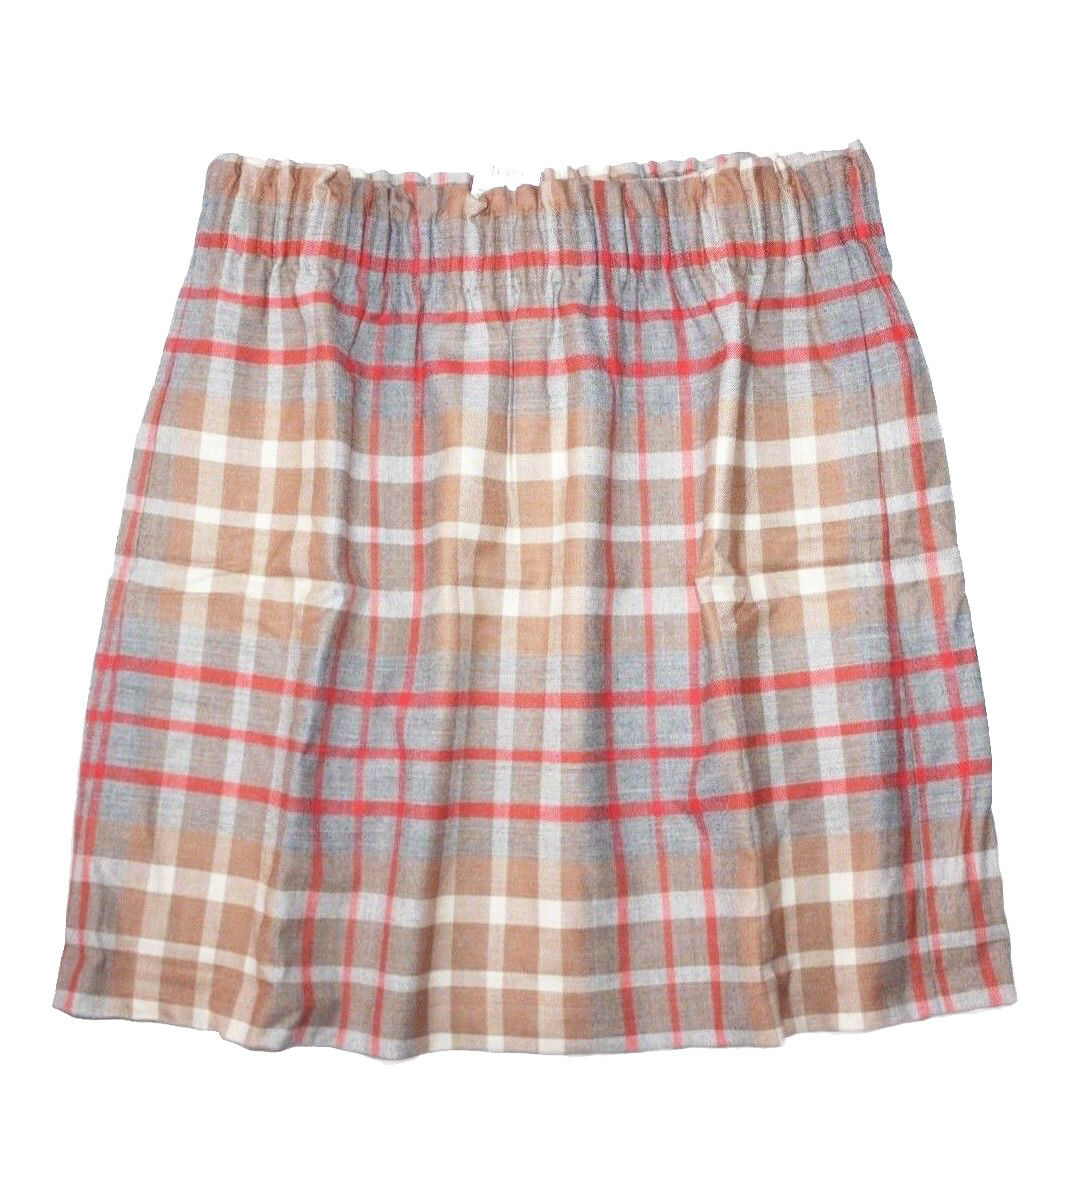 J Crew Factory - Womens 6 (S) - NWT - Plaid Wool Blend Sidewalk Pull-on Skirt